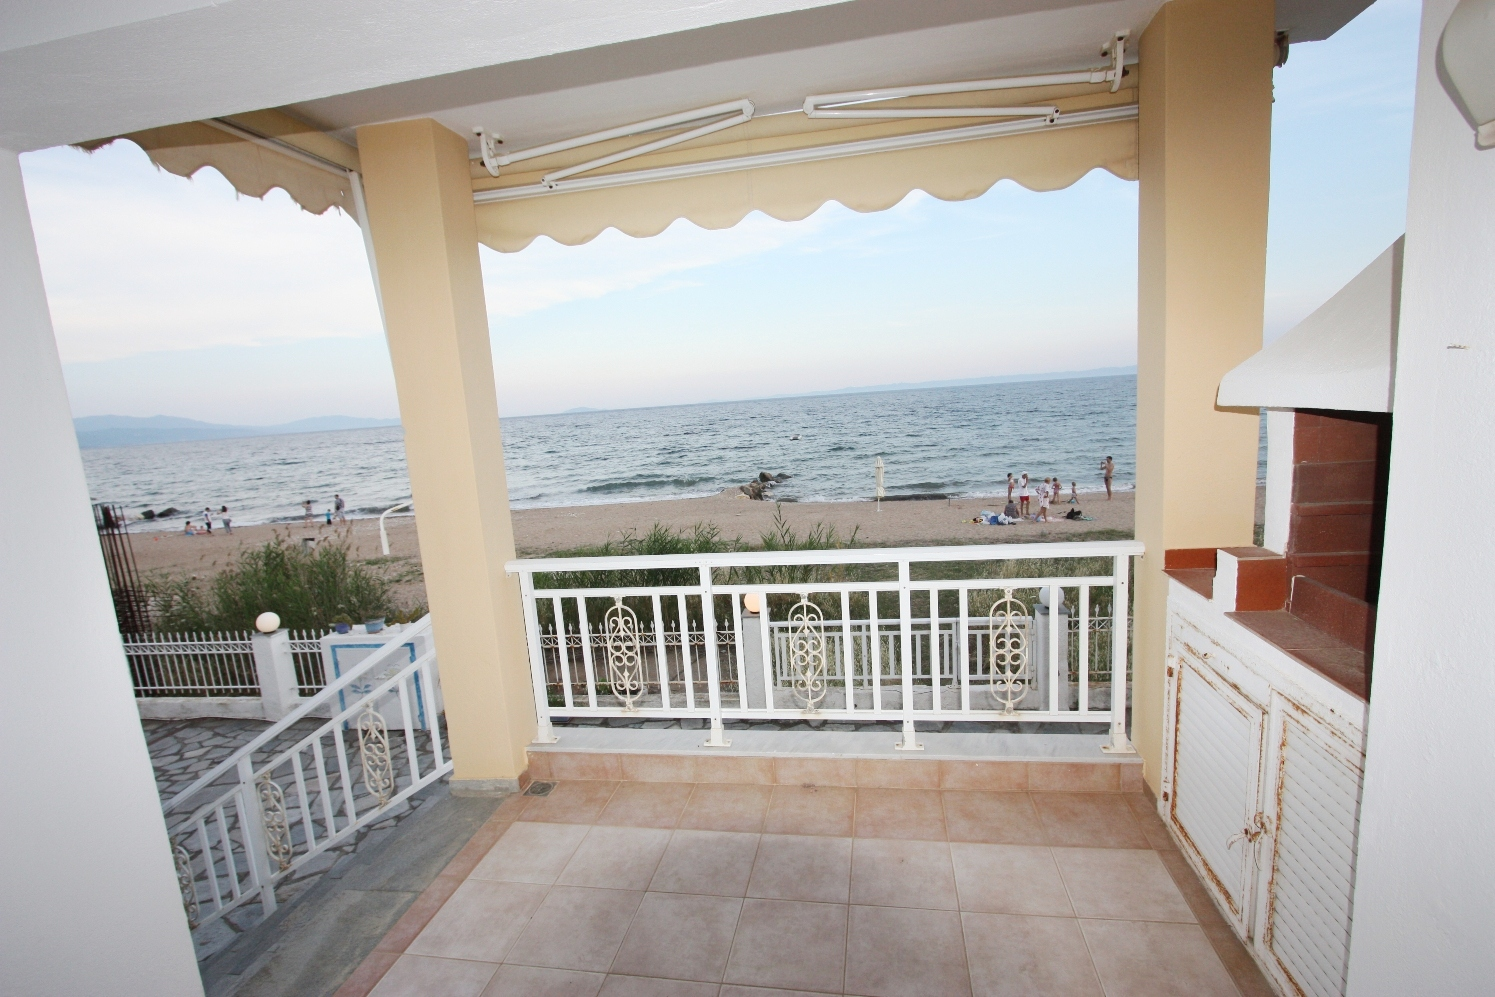 Mattheos, Halkidiki-Sithonia, Greece - 2floored apartment 1st line to the sea for sale